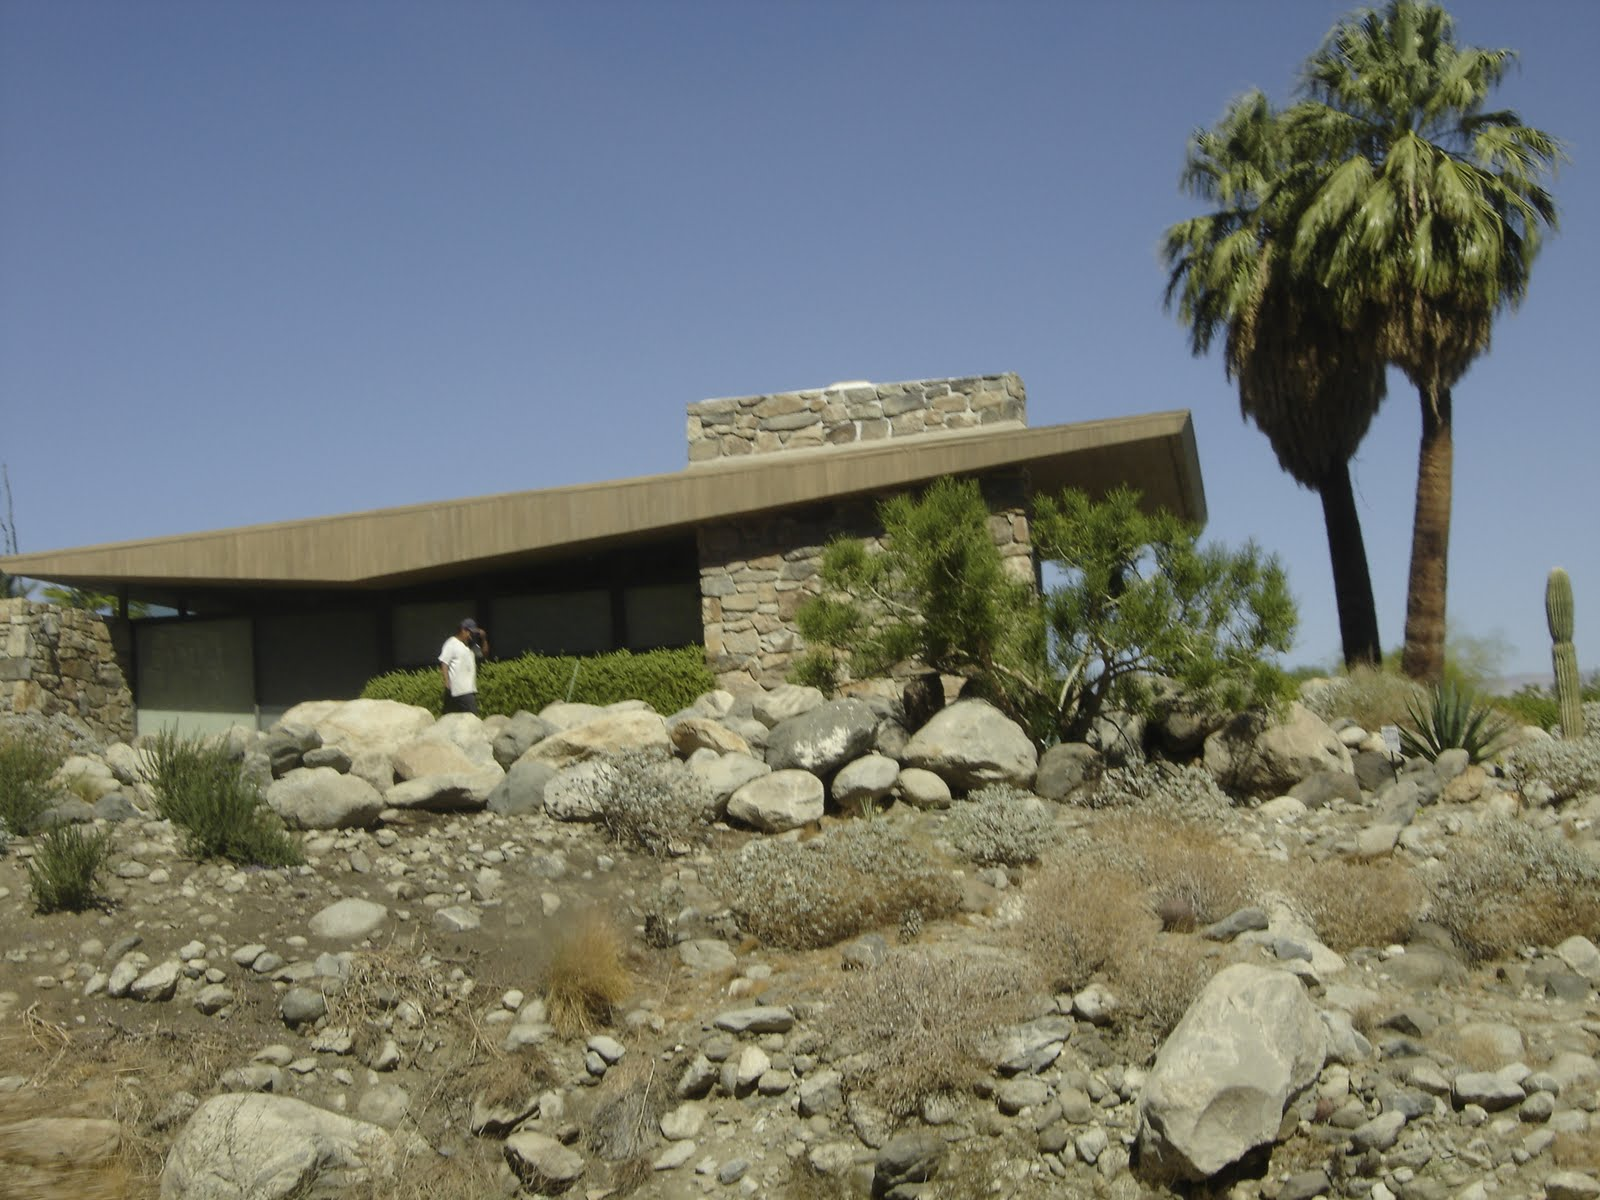 Places to go buildings to see edris house palm springs for The edris house palm springs